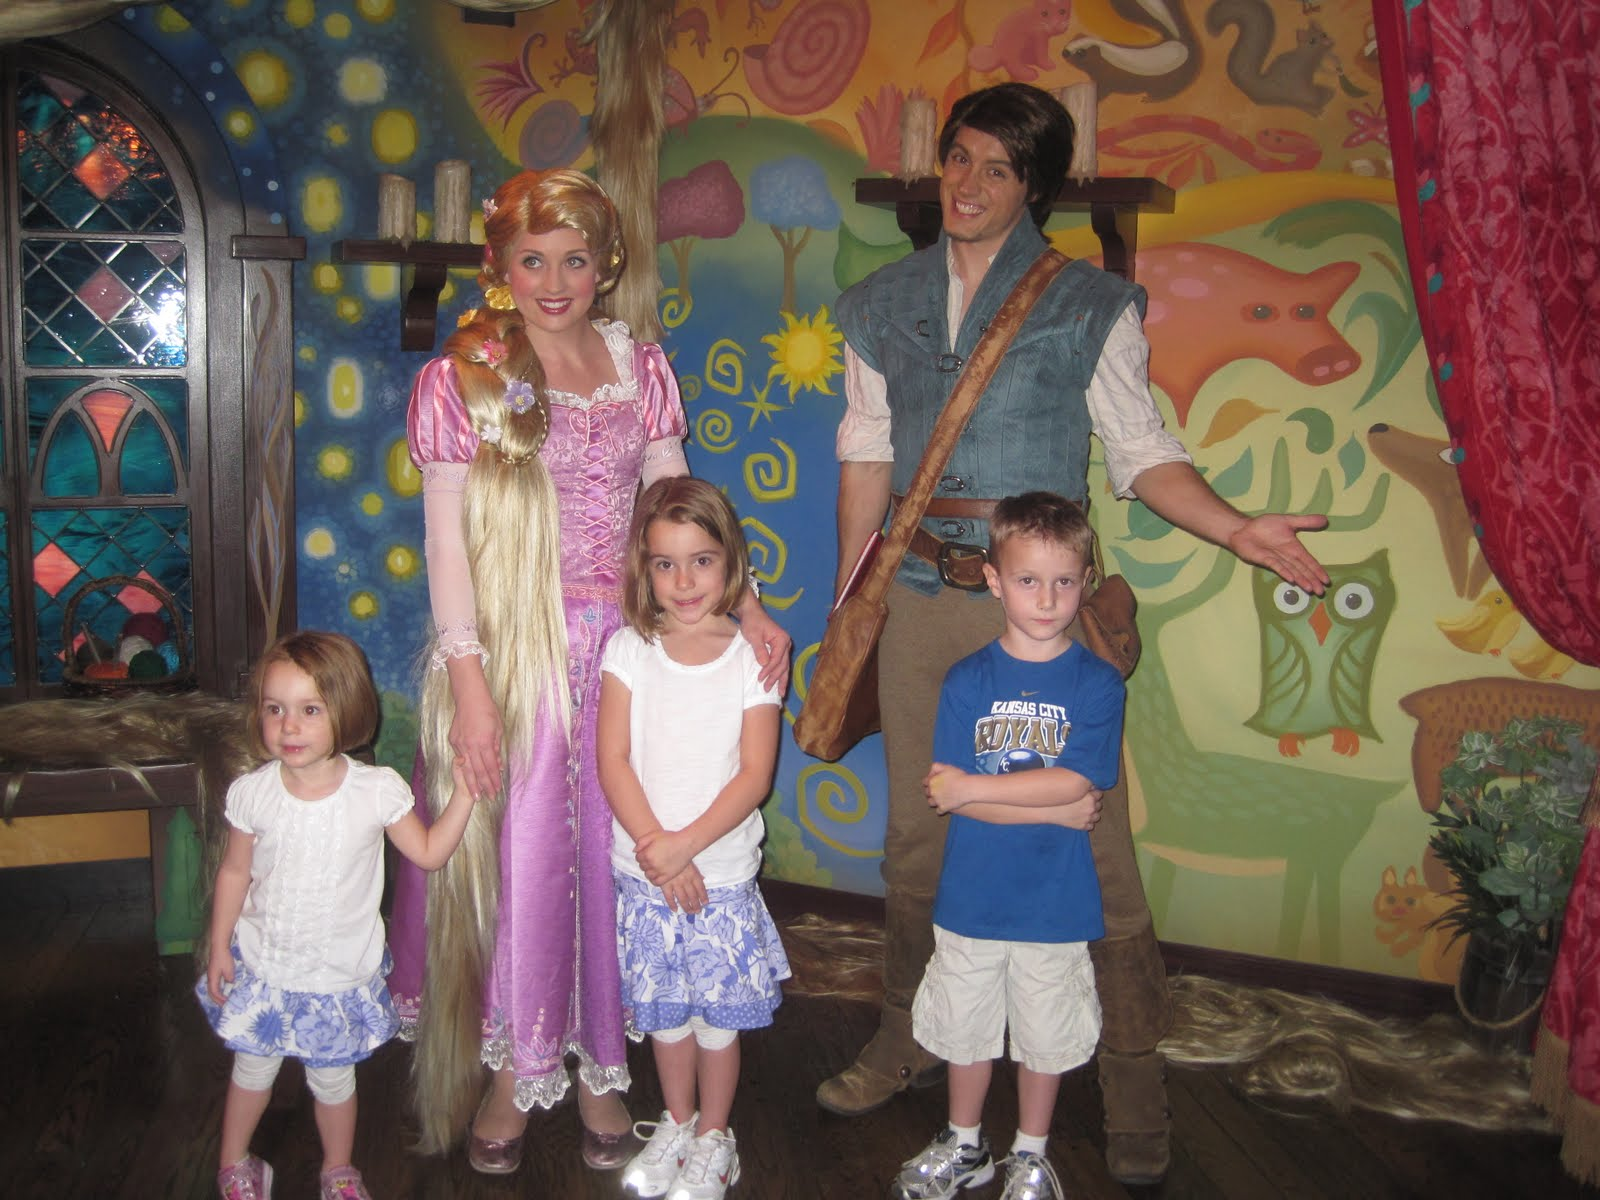 Flynn Rider Disney World 2013 To meet rapunzel but flynnFlynn Rider Disney World 2013